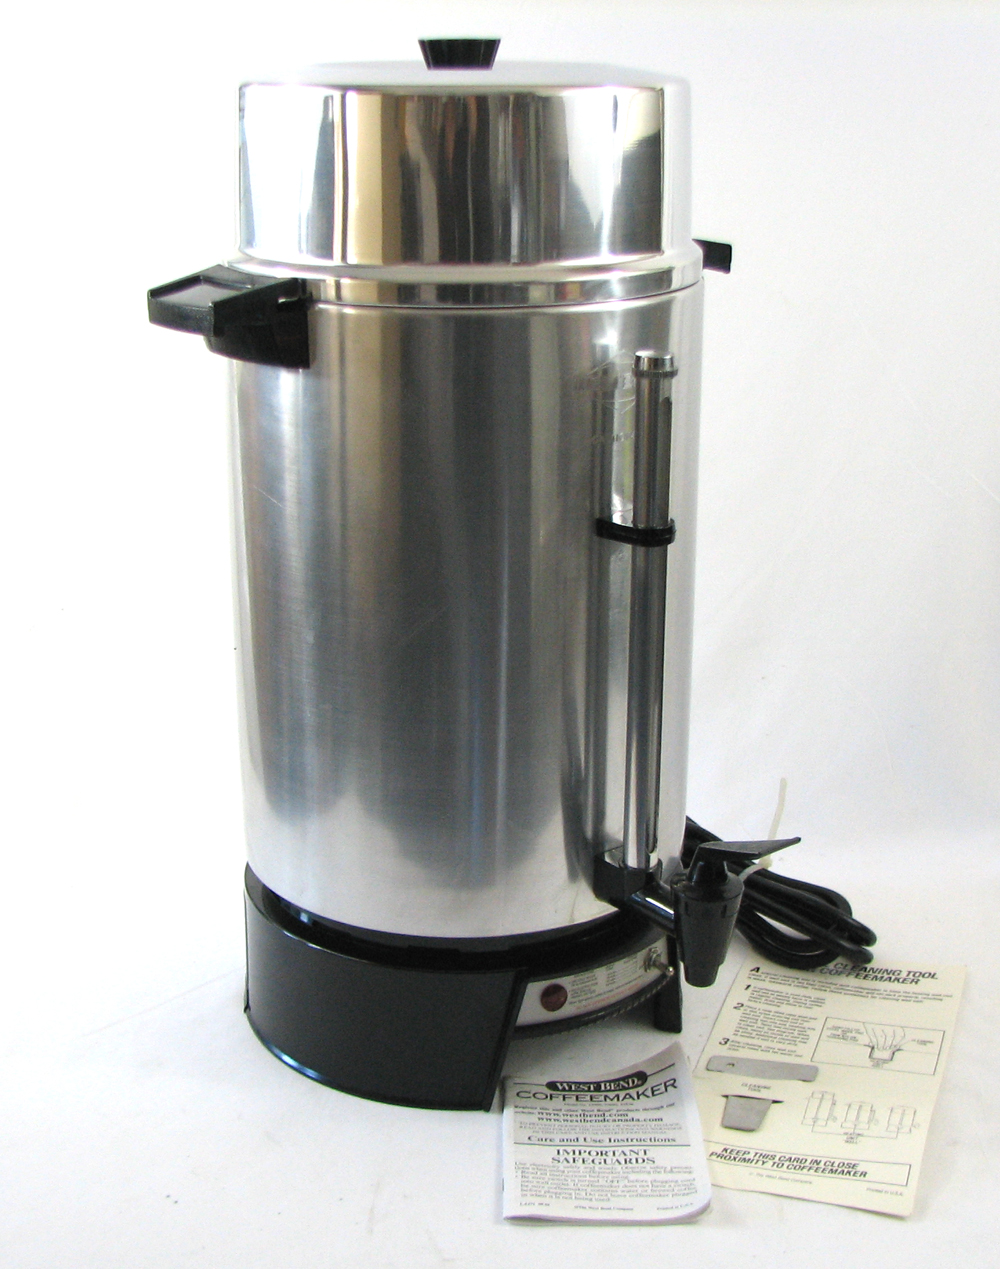 West Bend Coffee Maker Percolator : West Bend 33600 Commercial High Volume Coffee Maker 100 Cup Coffee Percolator eBay